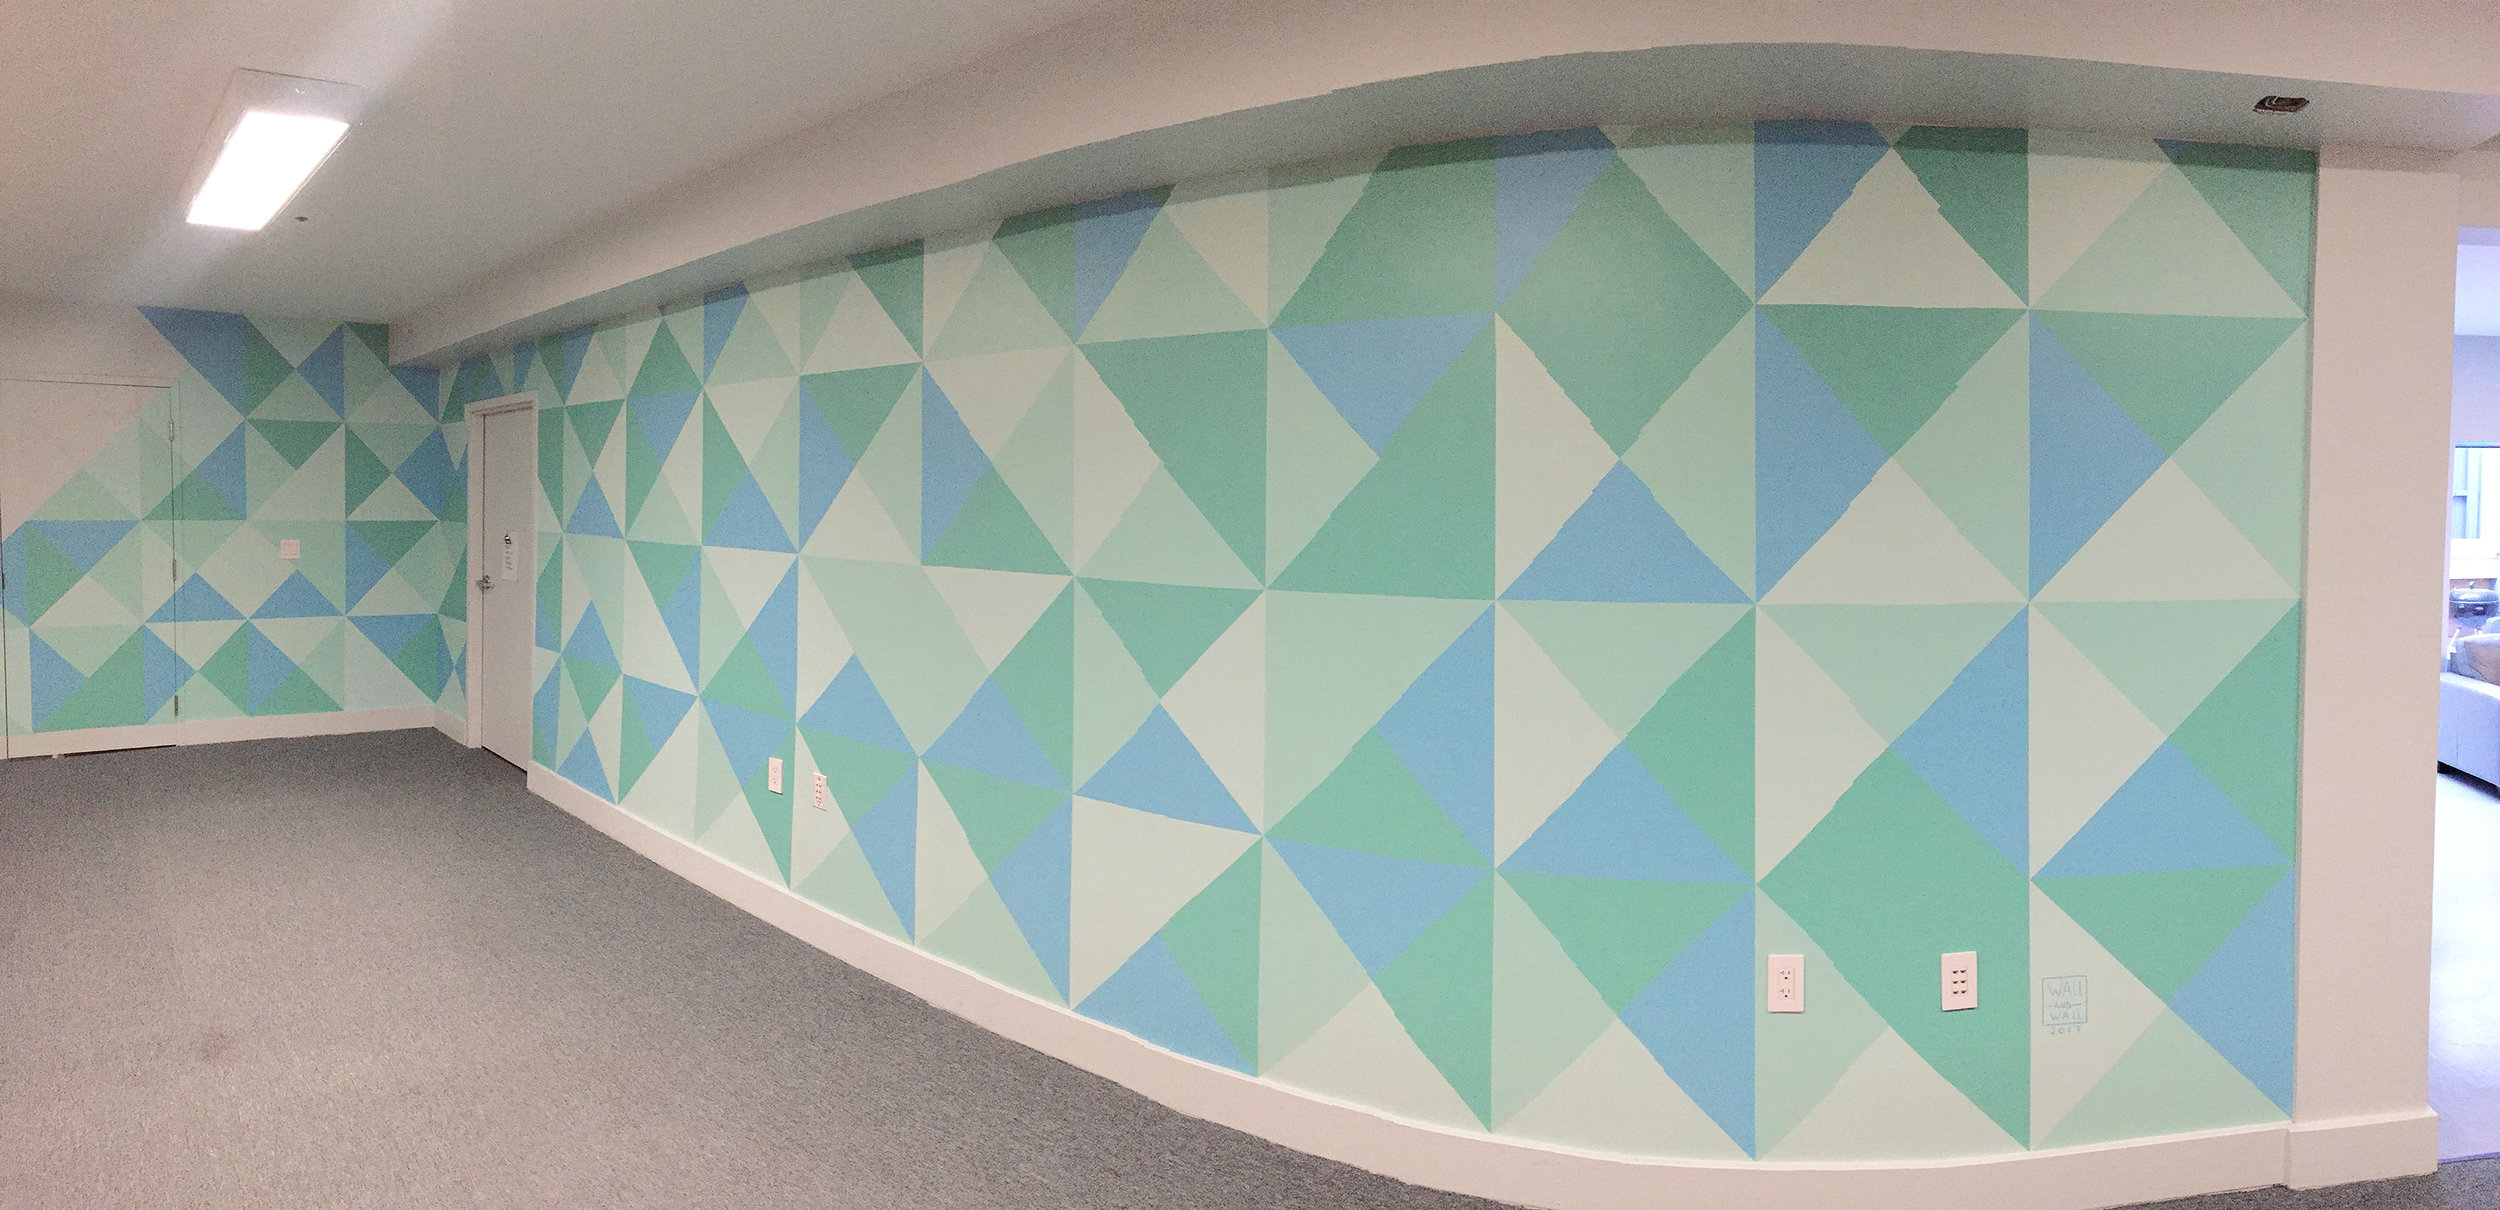 Office-commercial-mural-san-francisco-eden-wall-and-wall-mural-company.jpeg